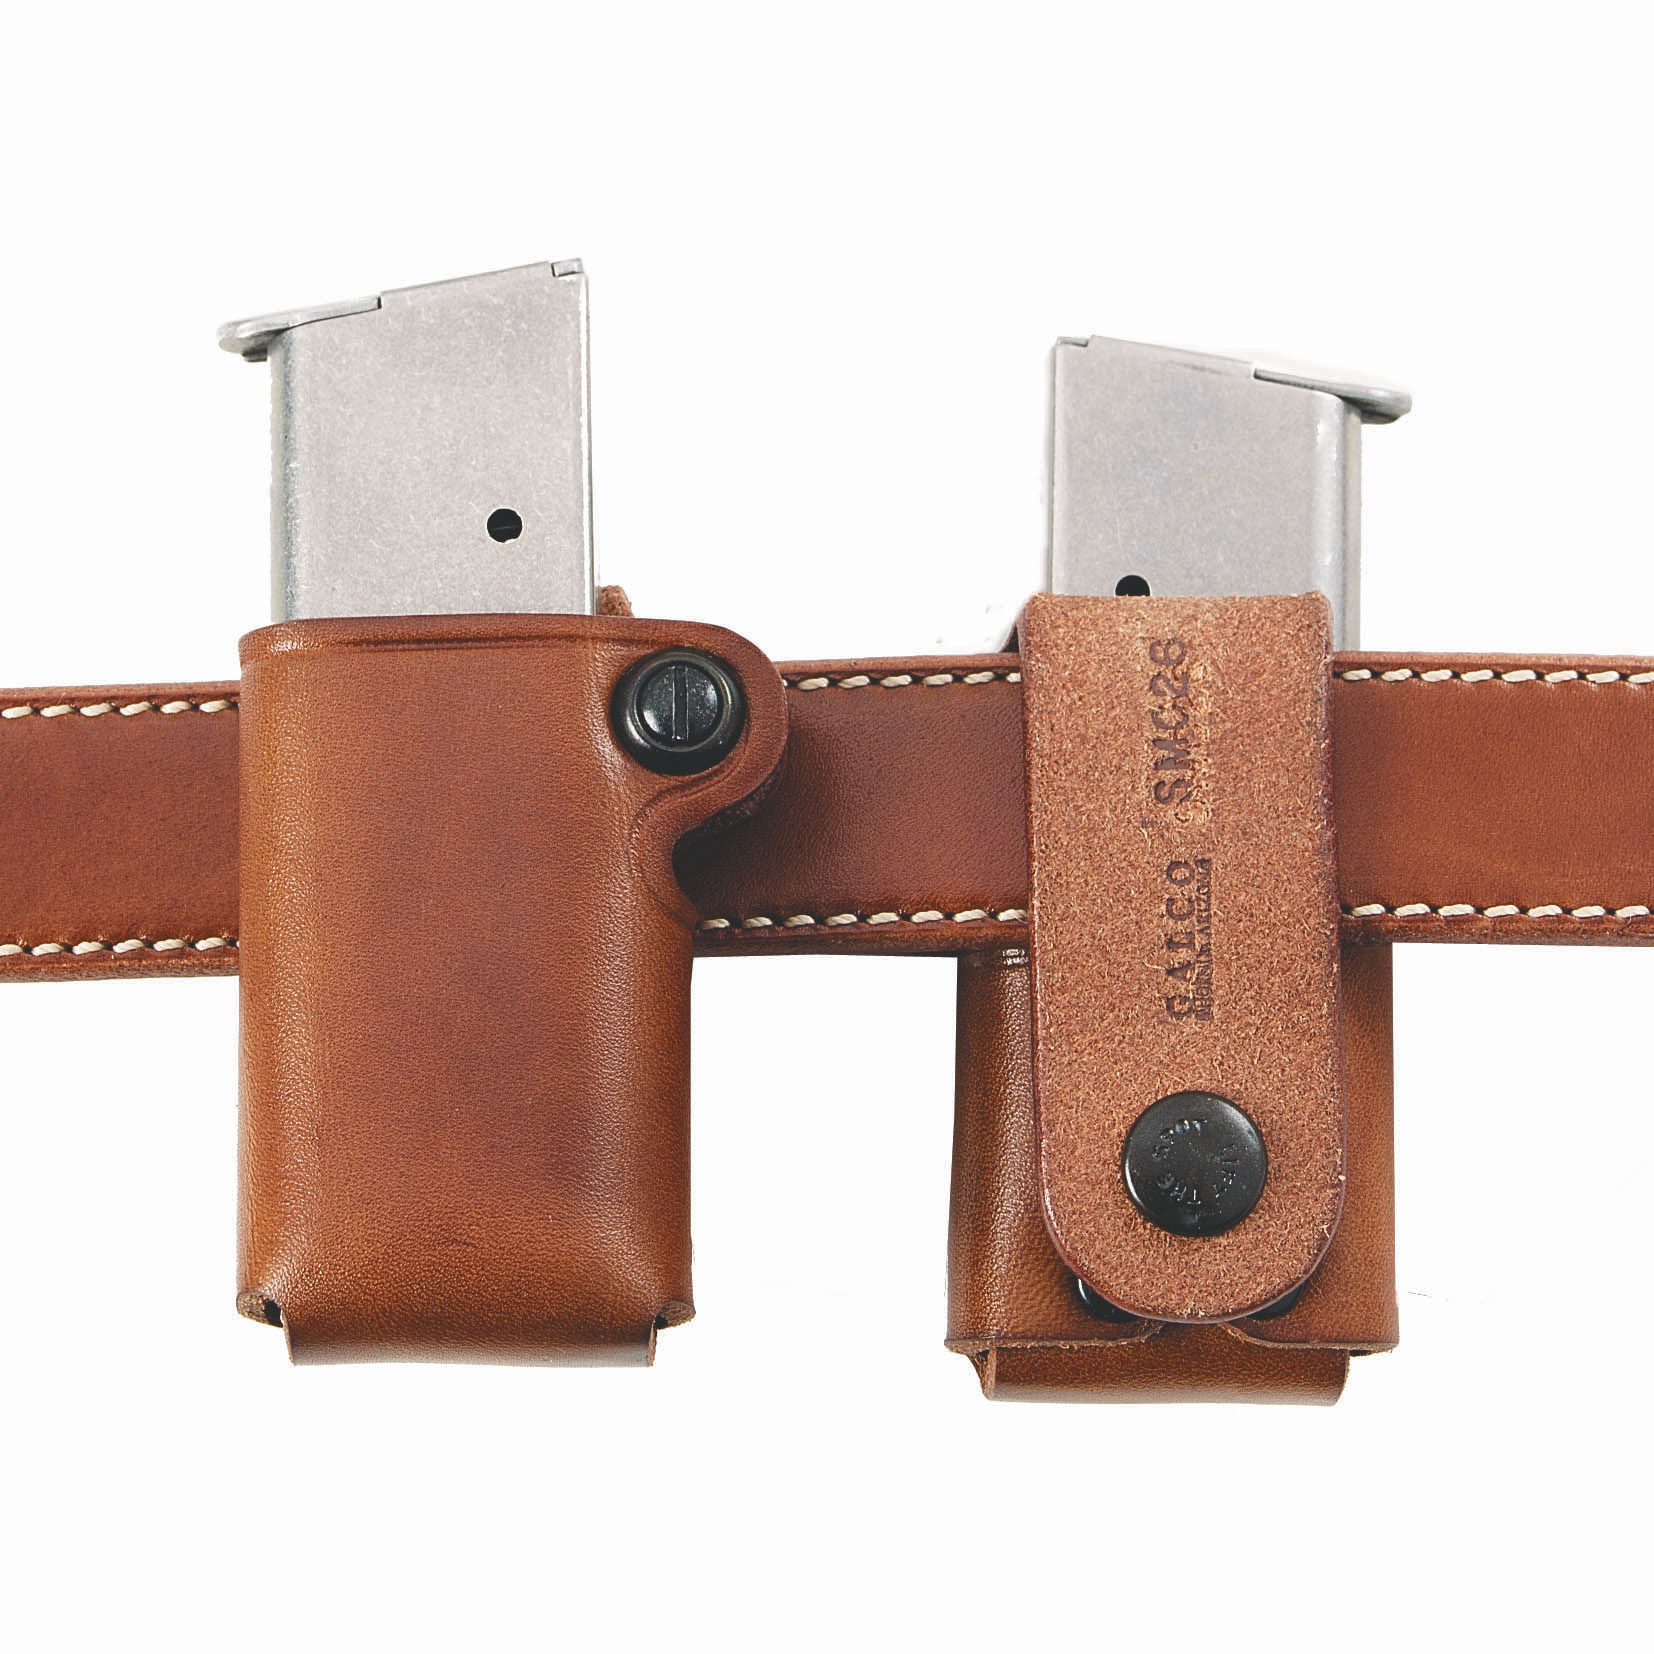 SMC - 'Single Magazine Case' - Leather Ammo Pouch by Galco